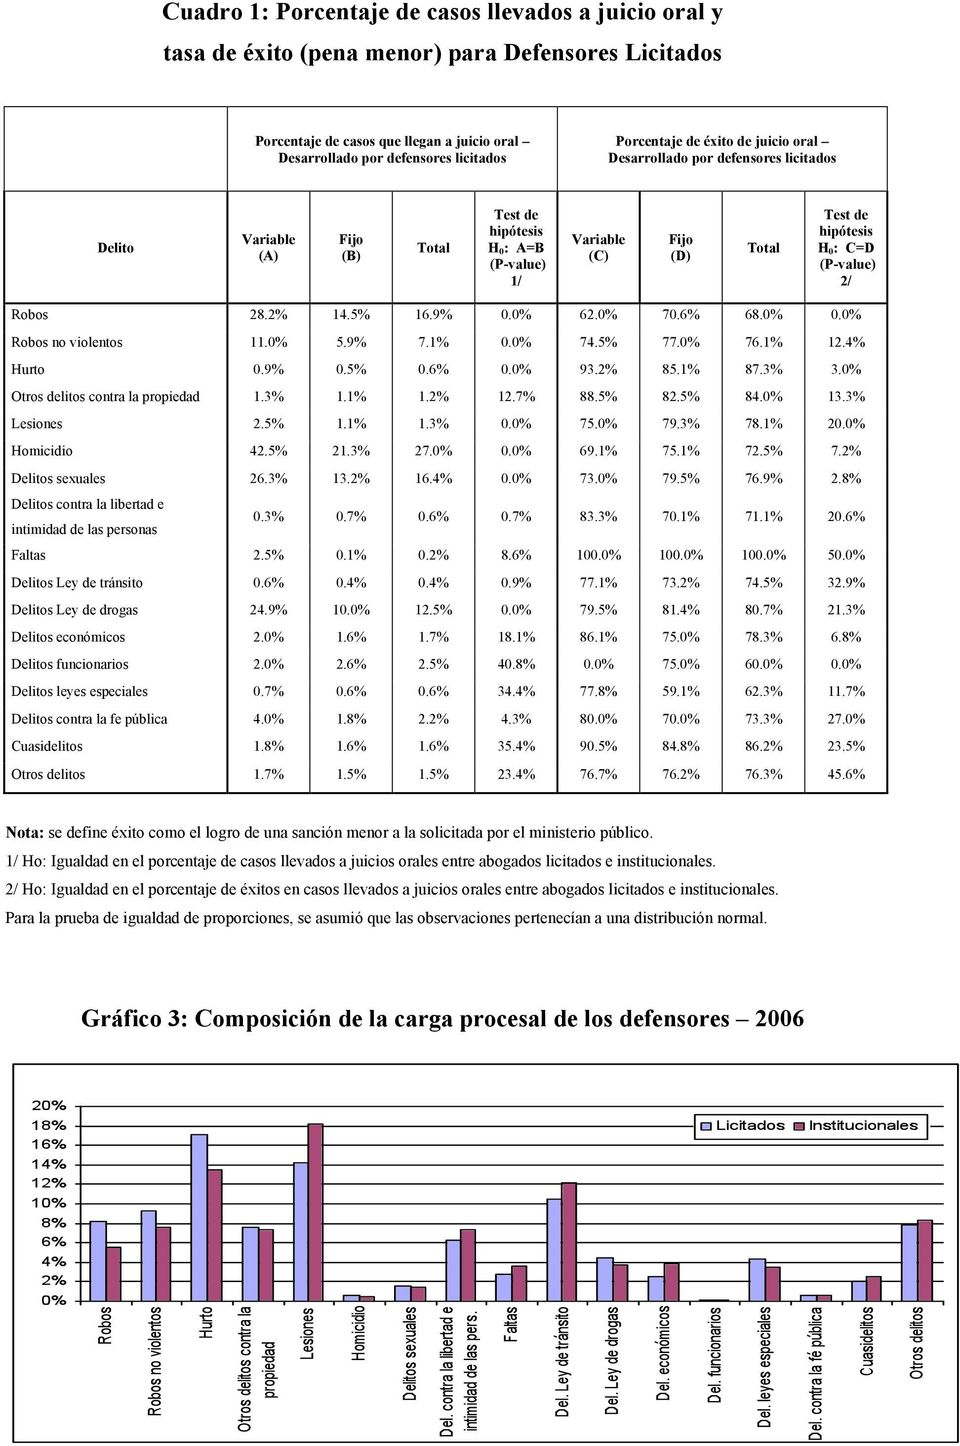 : C=D (P-value) 2/ Robos 28.2% 14.5% 16.9% 0.0% 62.0% 70.6% 68.0% 0.0% Robos no violentos 11.0% 5.9% 7.1% 0.0% 74.5% 77.0% 76.1% 12.4% Hurto 0.9% 0.5% 0.6% 0.0% 93.2% 85.1% 87.3% 3.